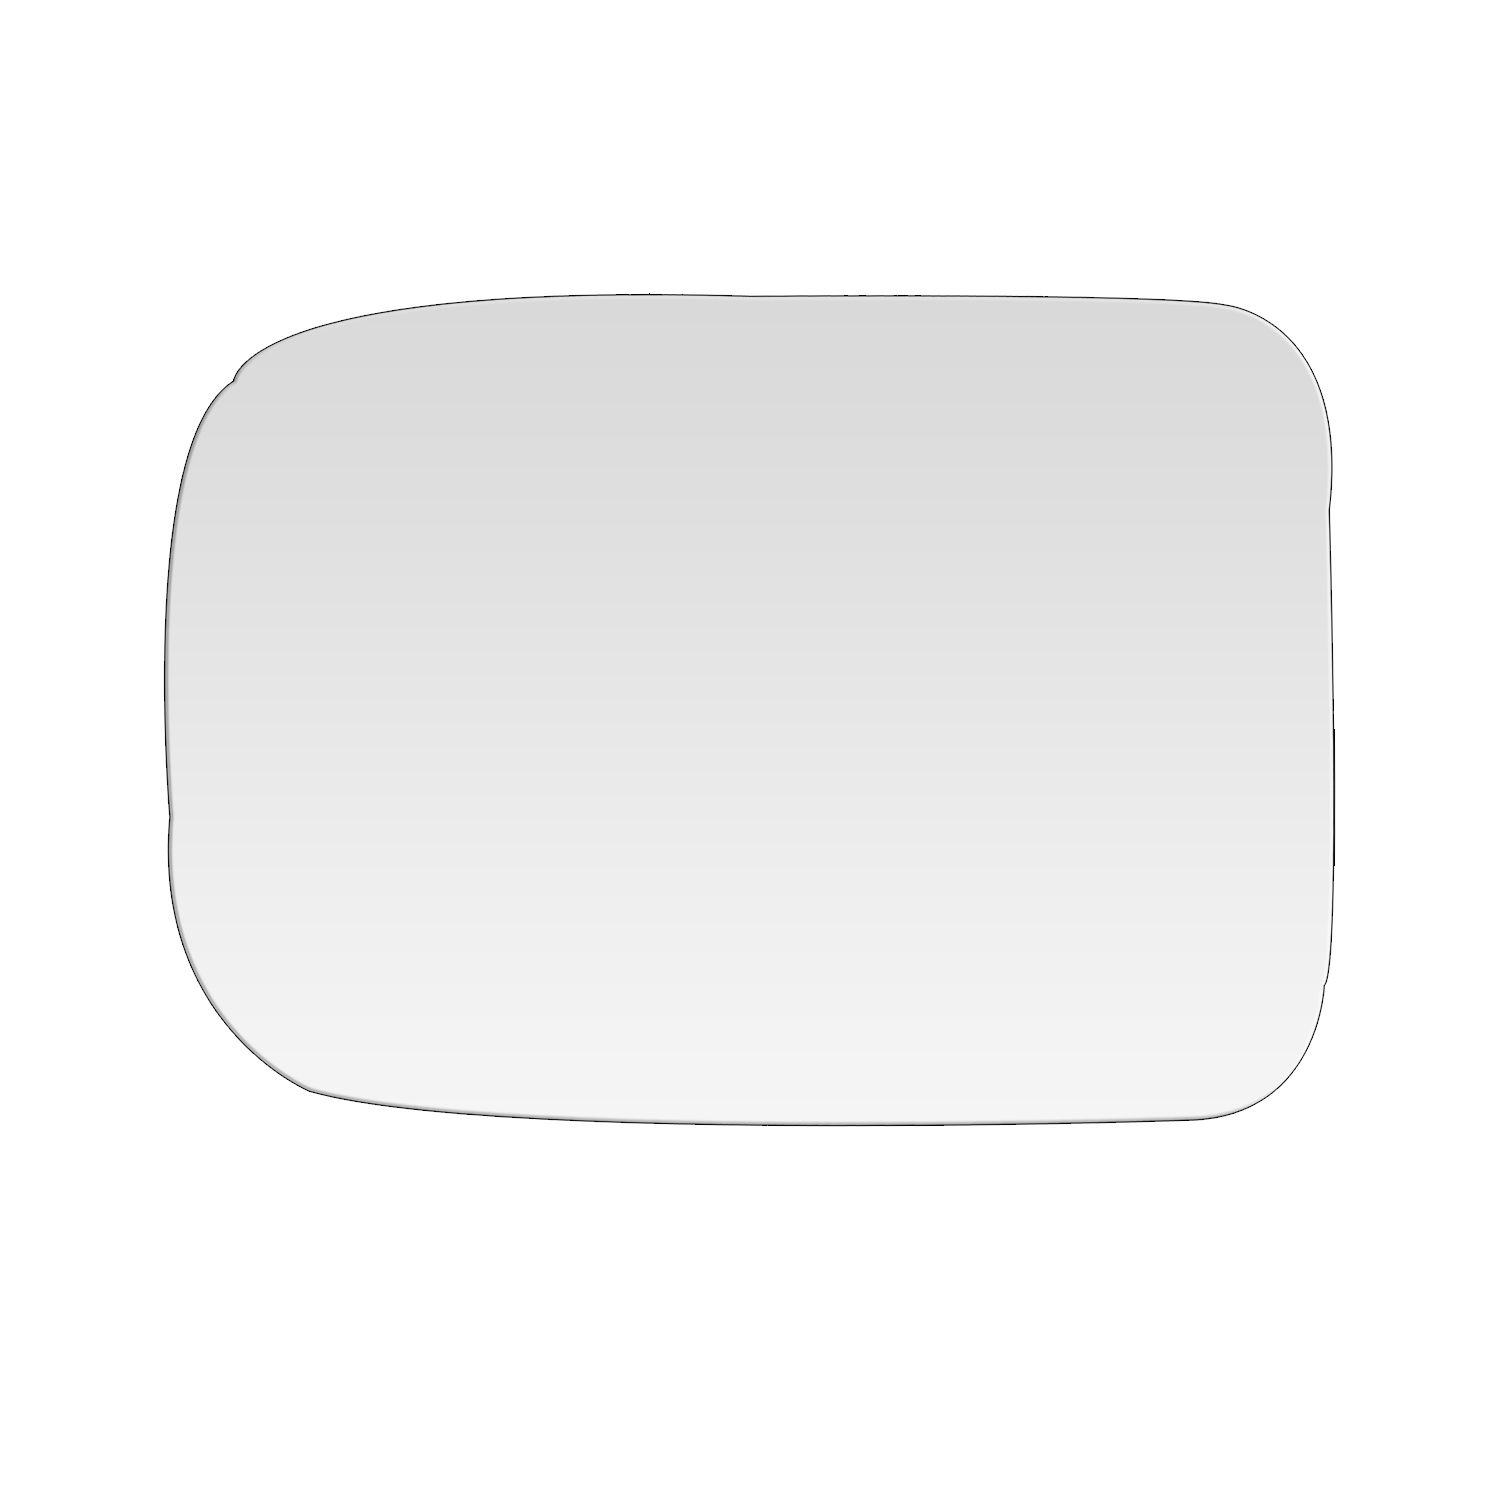 Driver Side Manual Replacement Mirror MI-2282